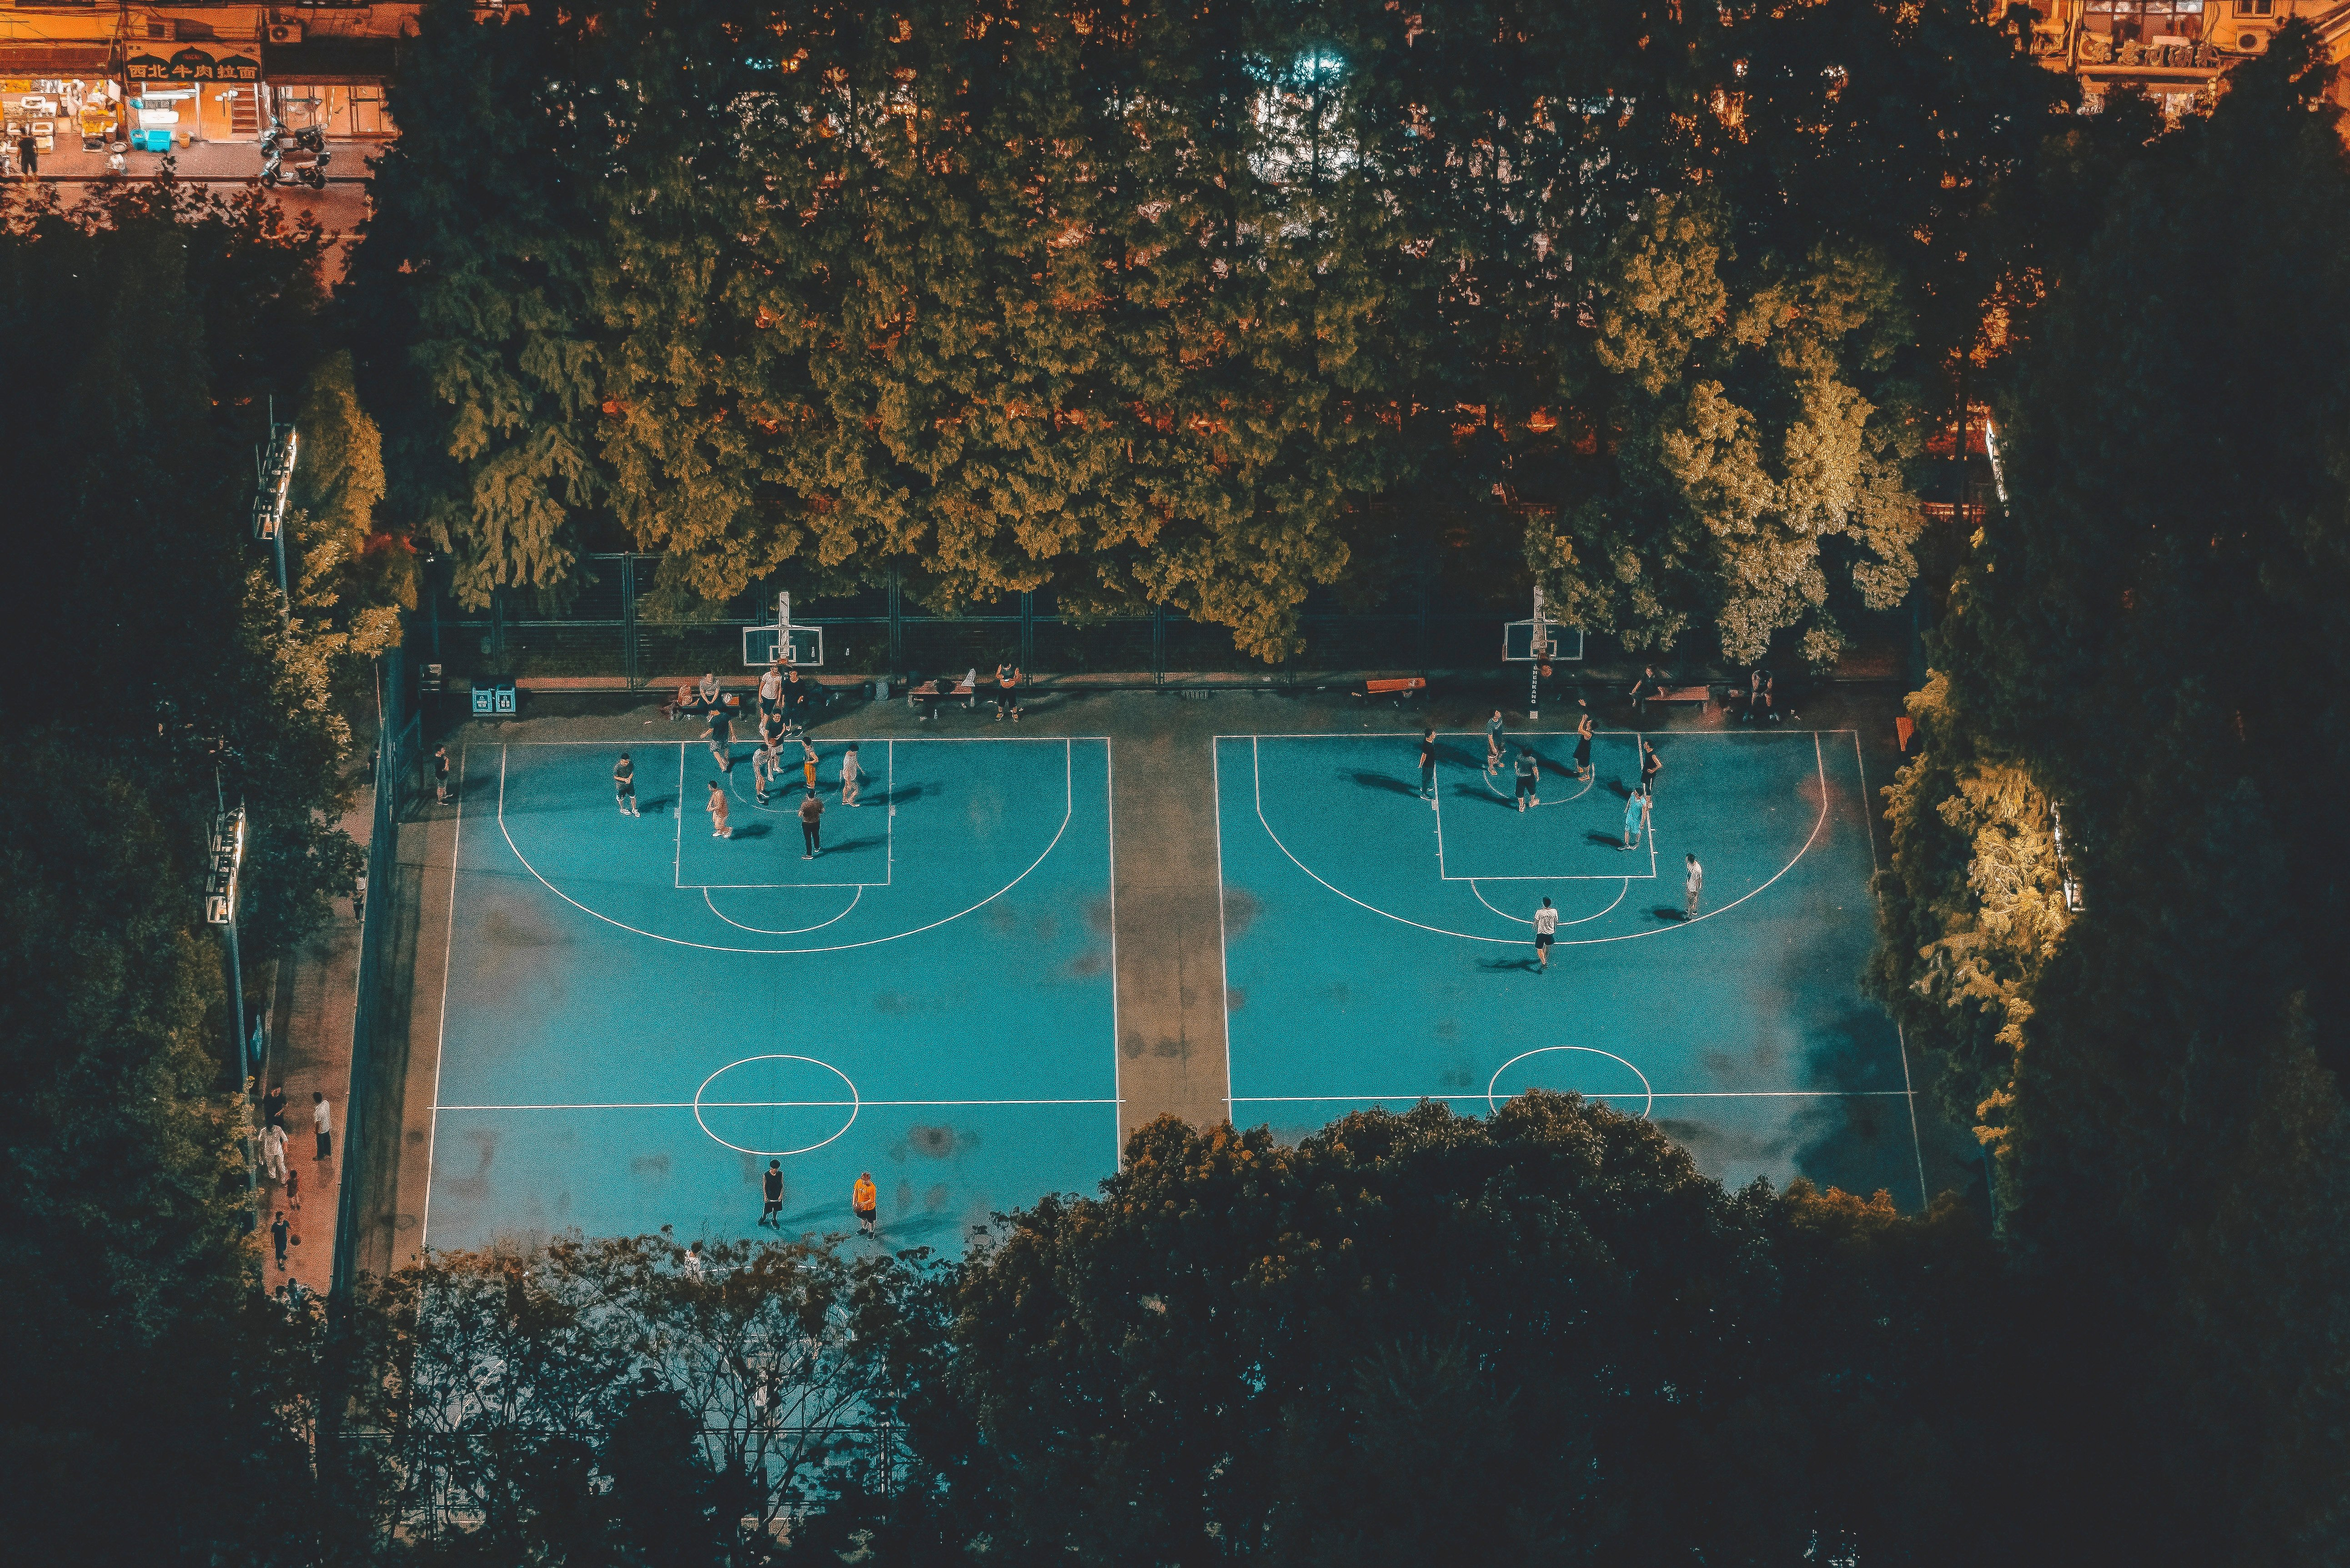 Basketball Pre-Season: Recharge Your Body and Mind